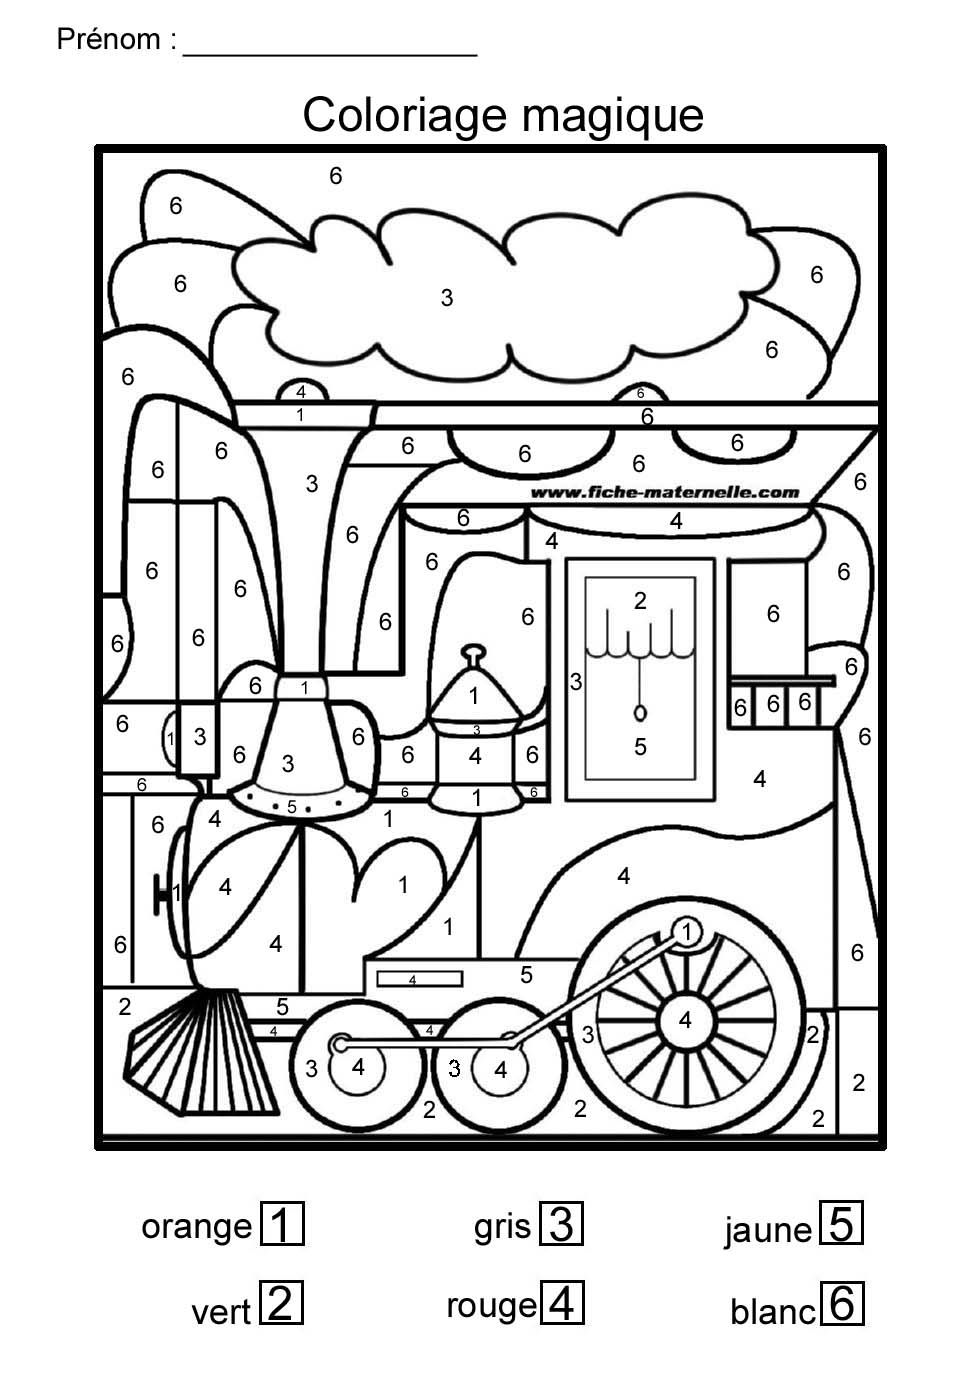 Coloriage Magique Gs Numeration.Coloriage Magique Pour Moyenne Section Et Grande Section Color By